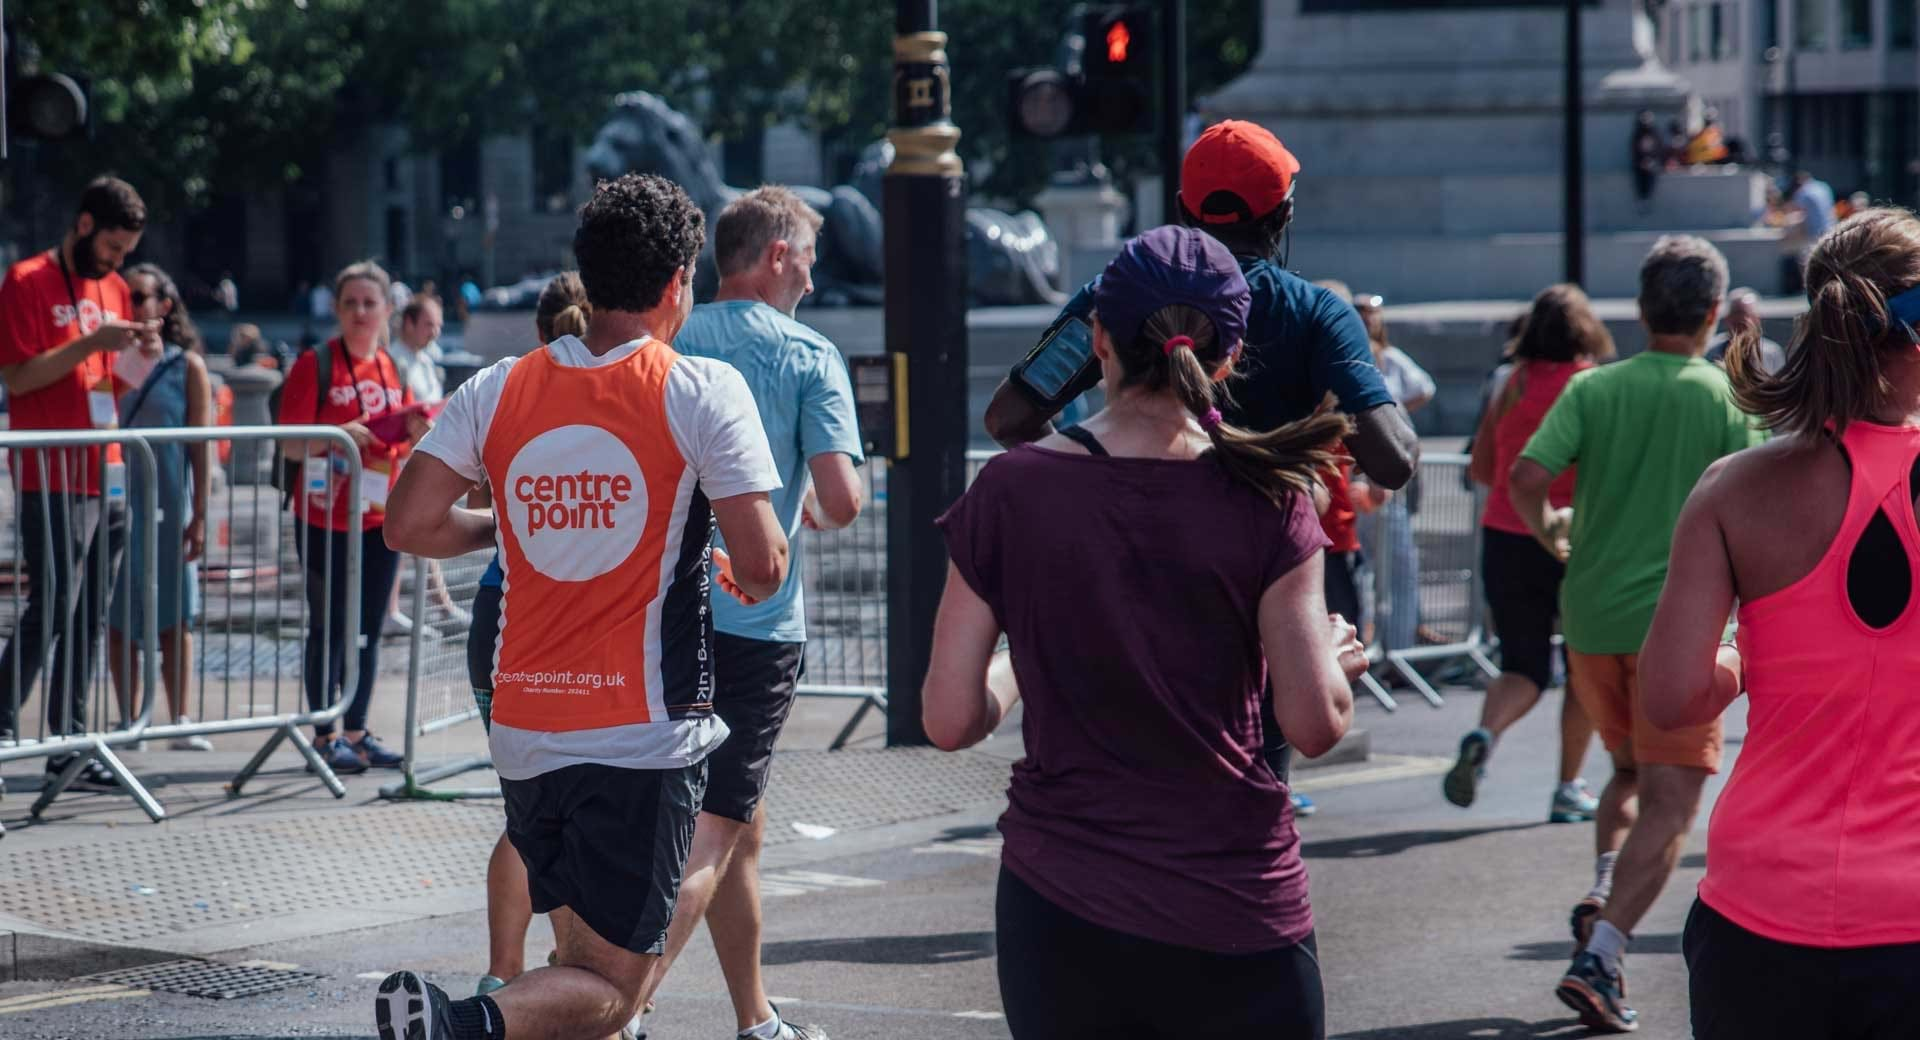 A participant at the British 10k runs for the charity Centrepoint.